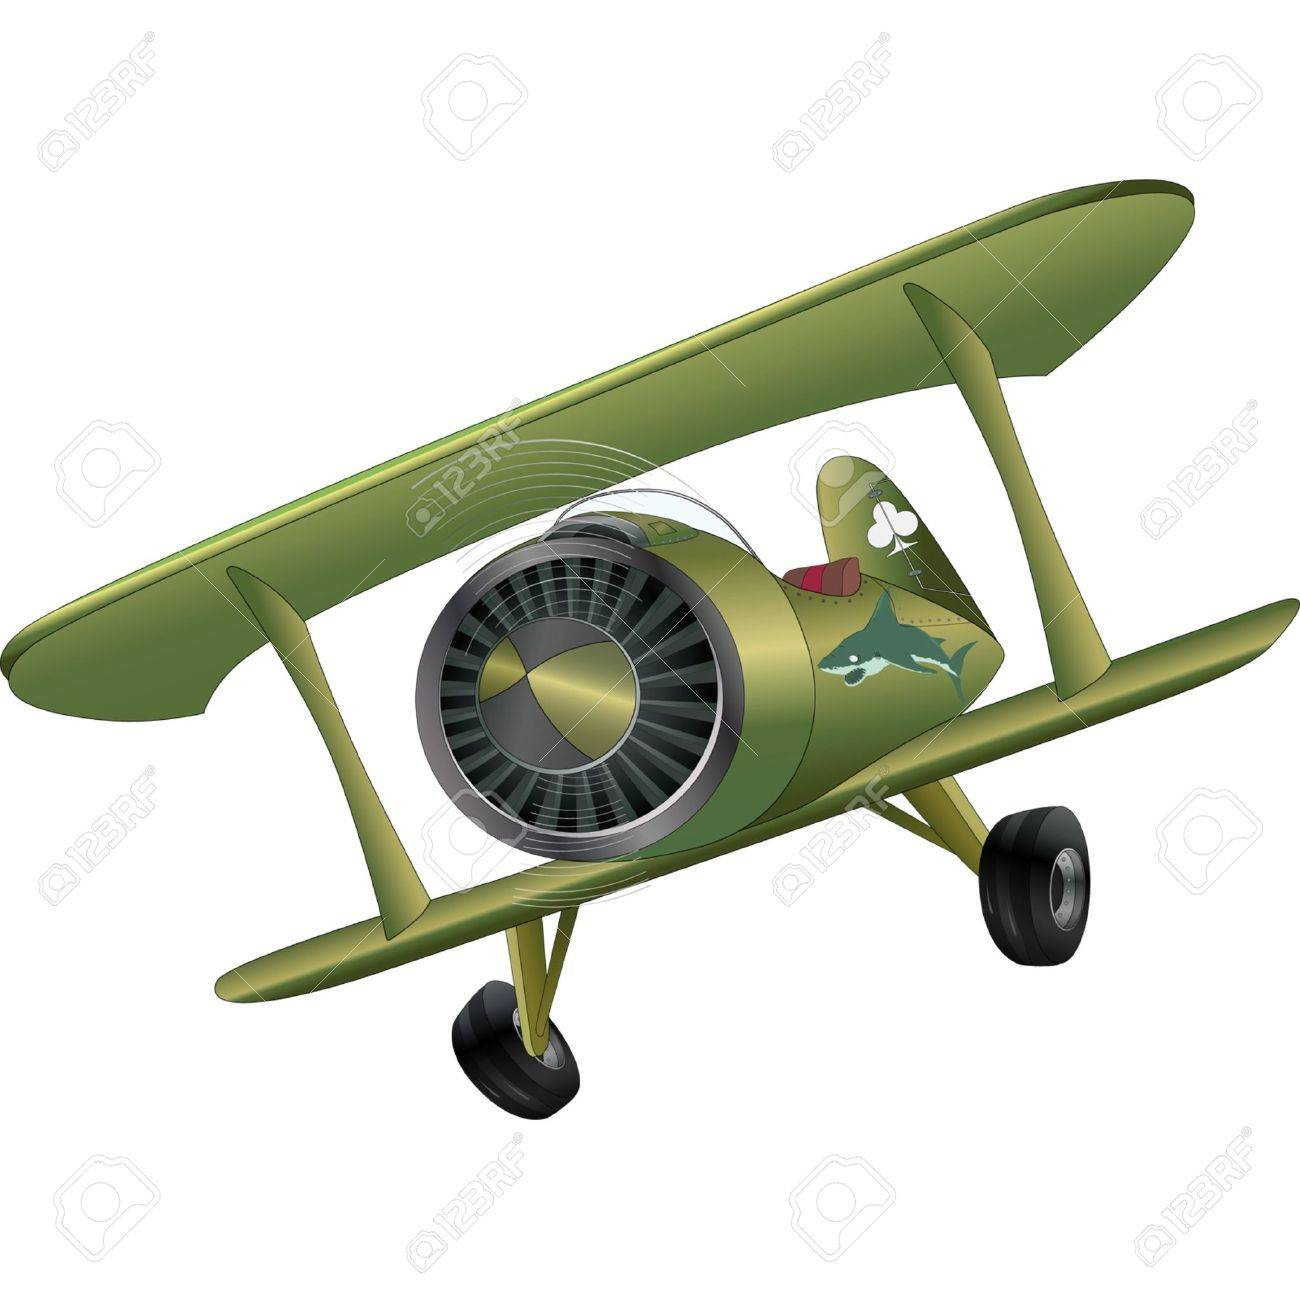 The old plane biplane Stock Vector - 12487034